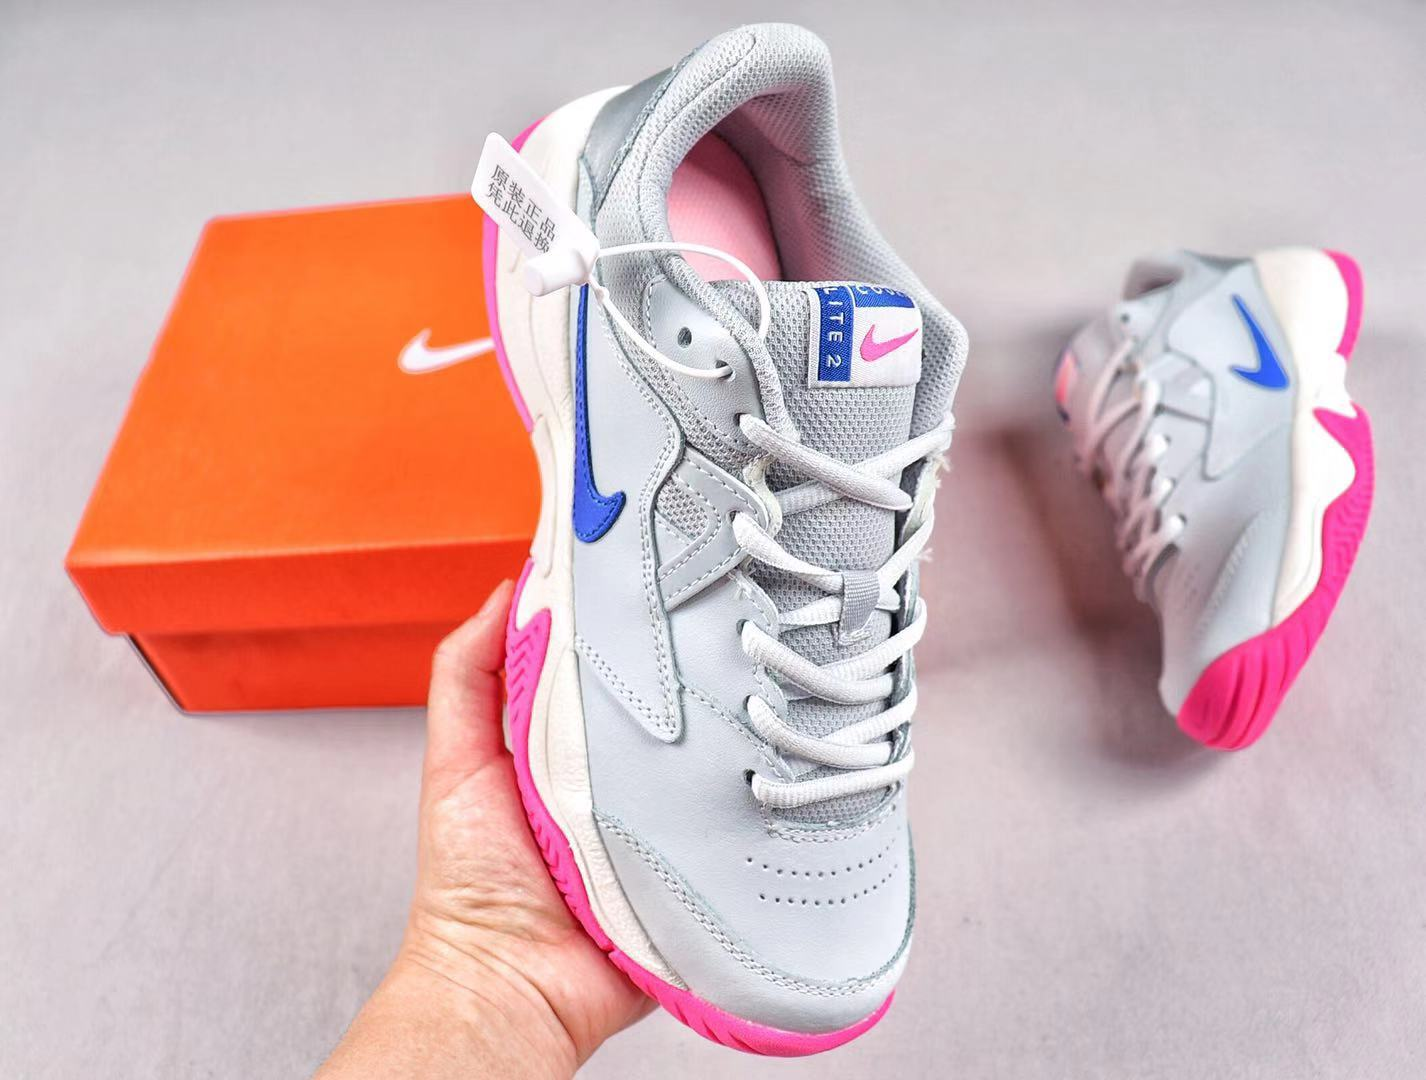 Discount Nike Court Lite 2 AR8838-001 Tennis Shoes Pure Platinum/Racer Blue